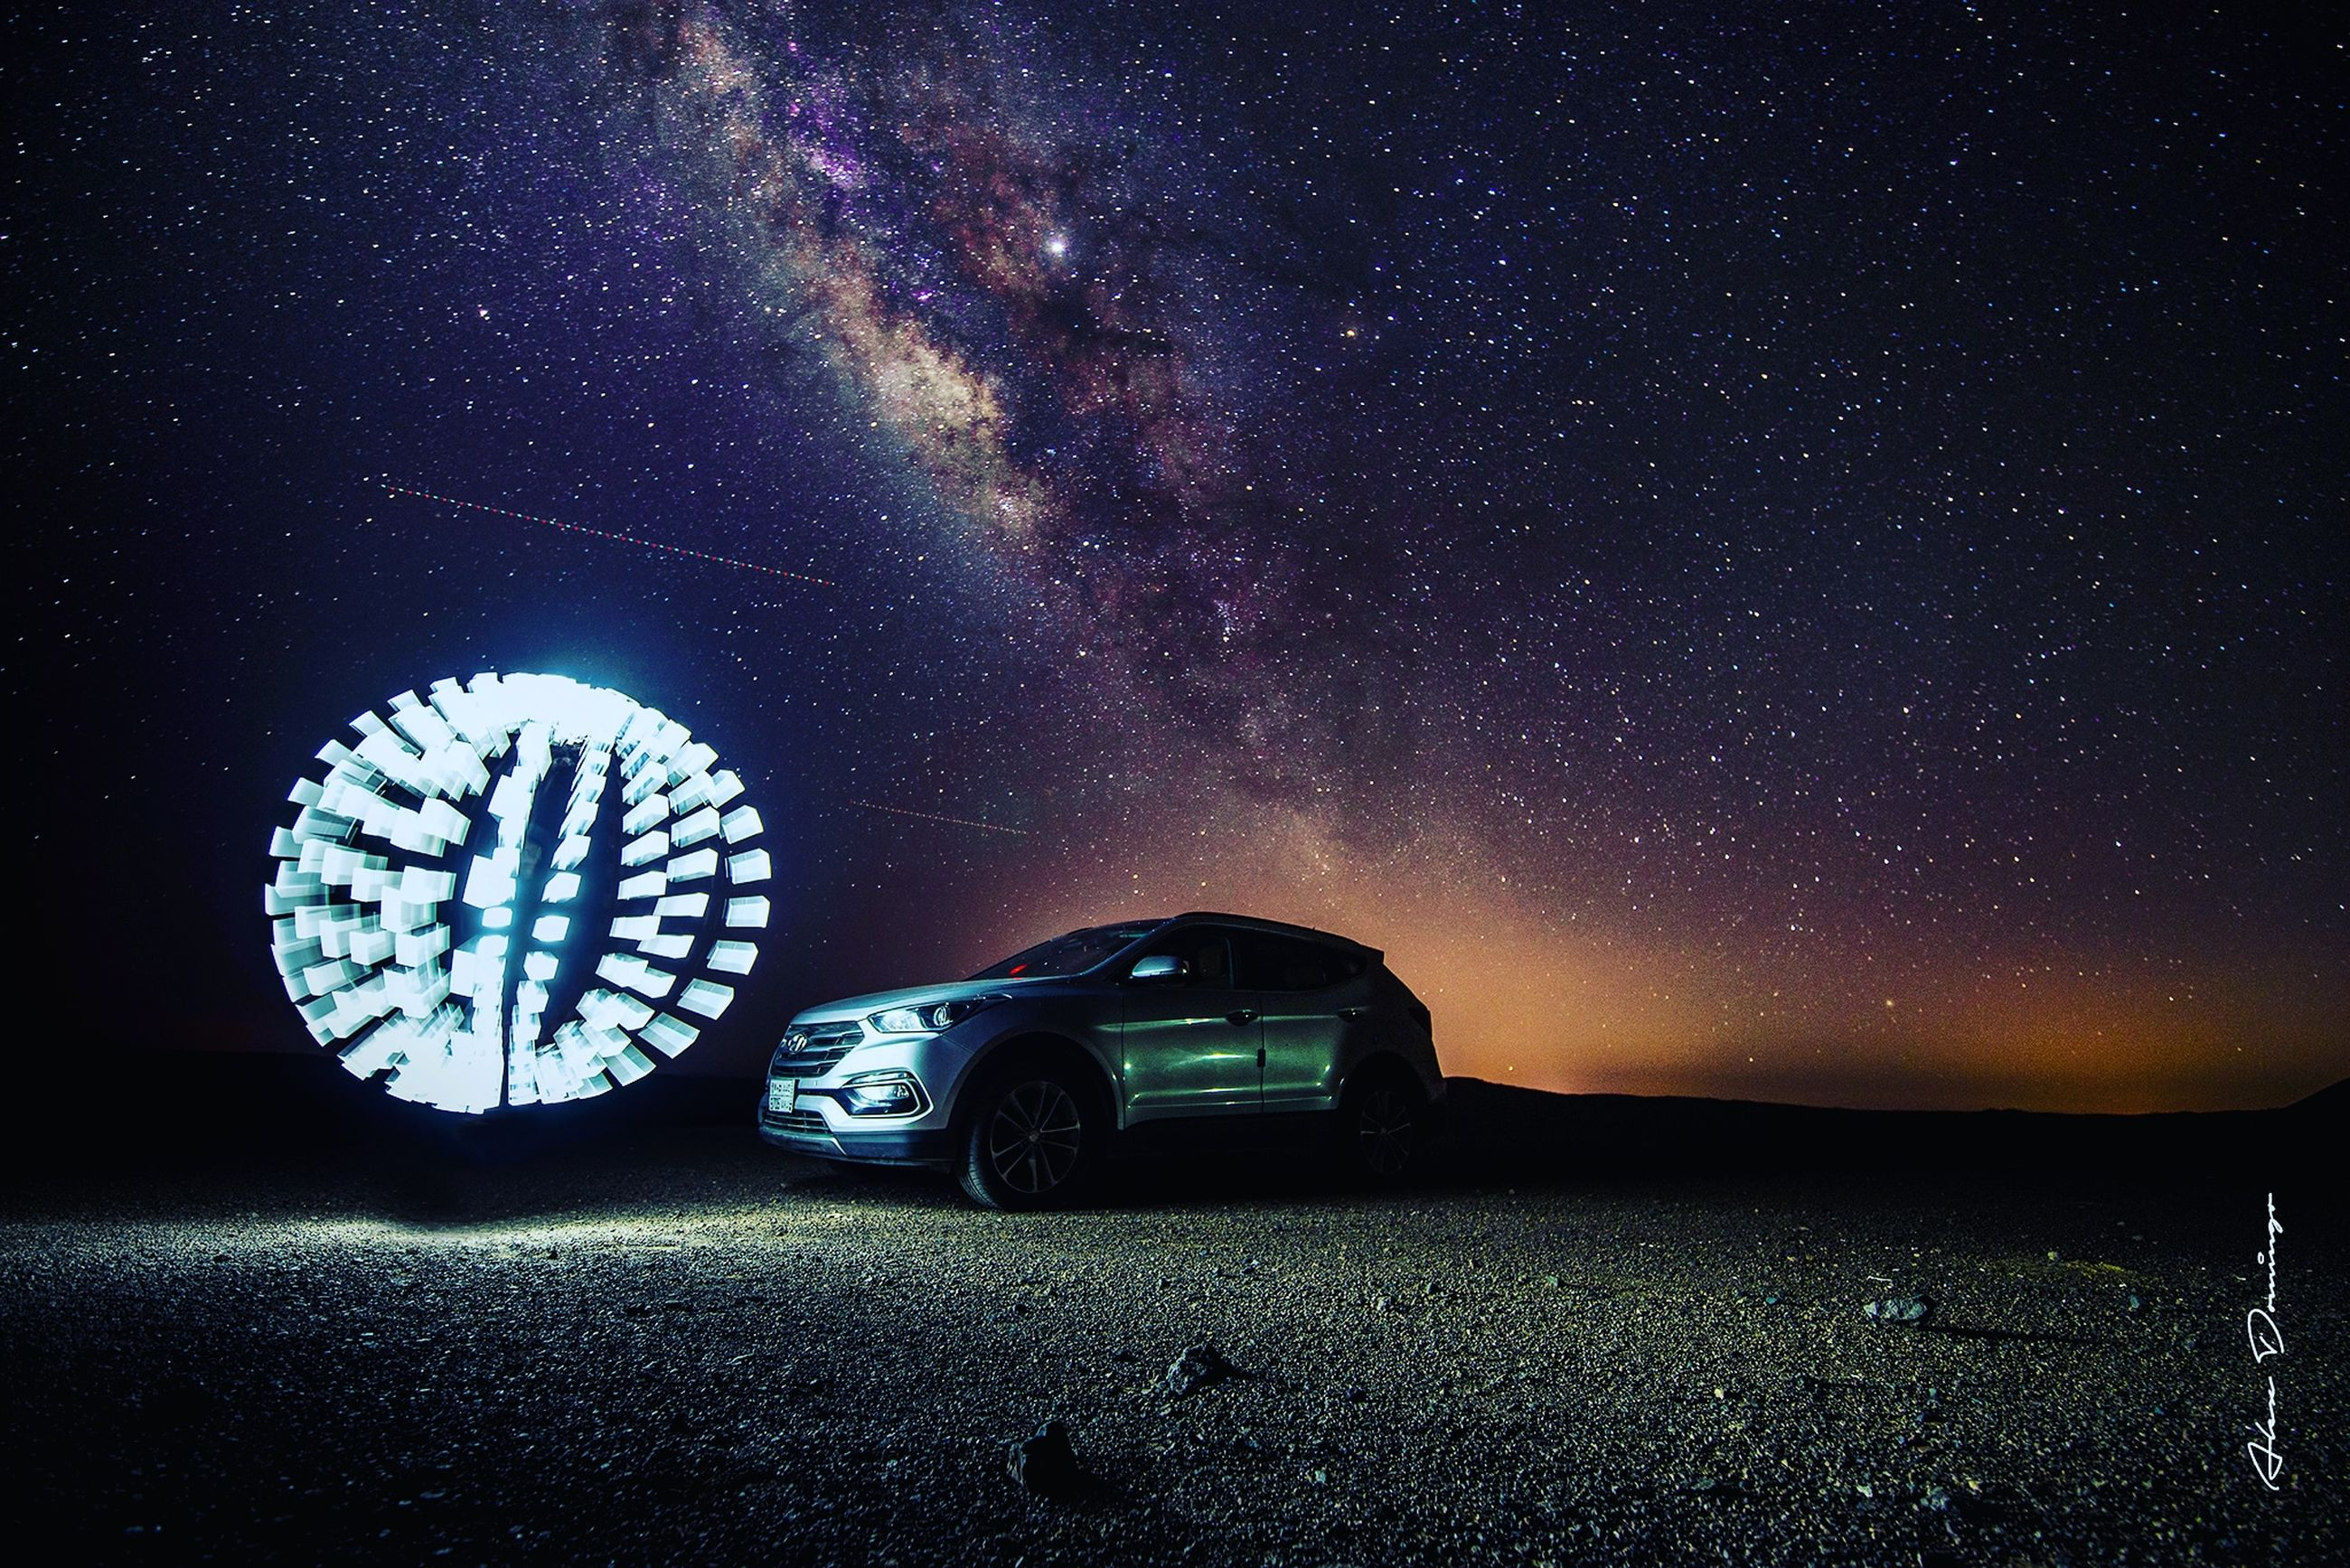 night, star - space, sky, astronomy, mode of transportation, transportation, car, space, motor vehicle, land vehicle, galaxy, scenics - nature, star, nature, star field, beauty in nature, no people, infinity, illuminated, field